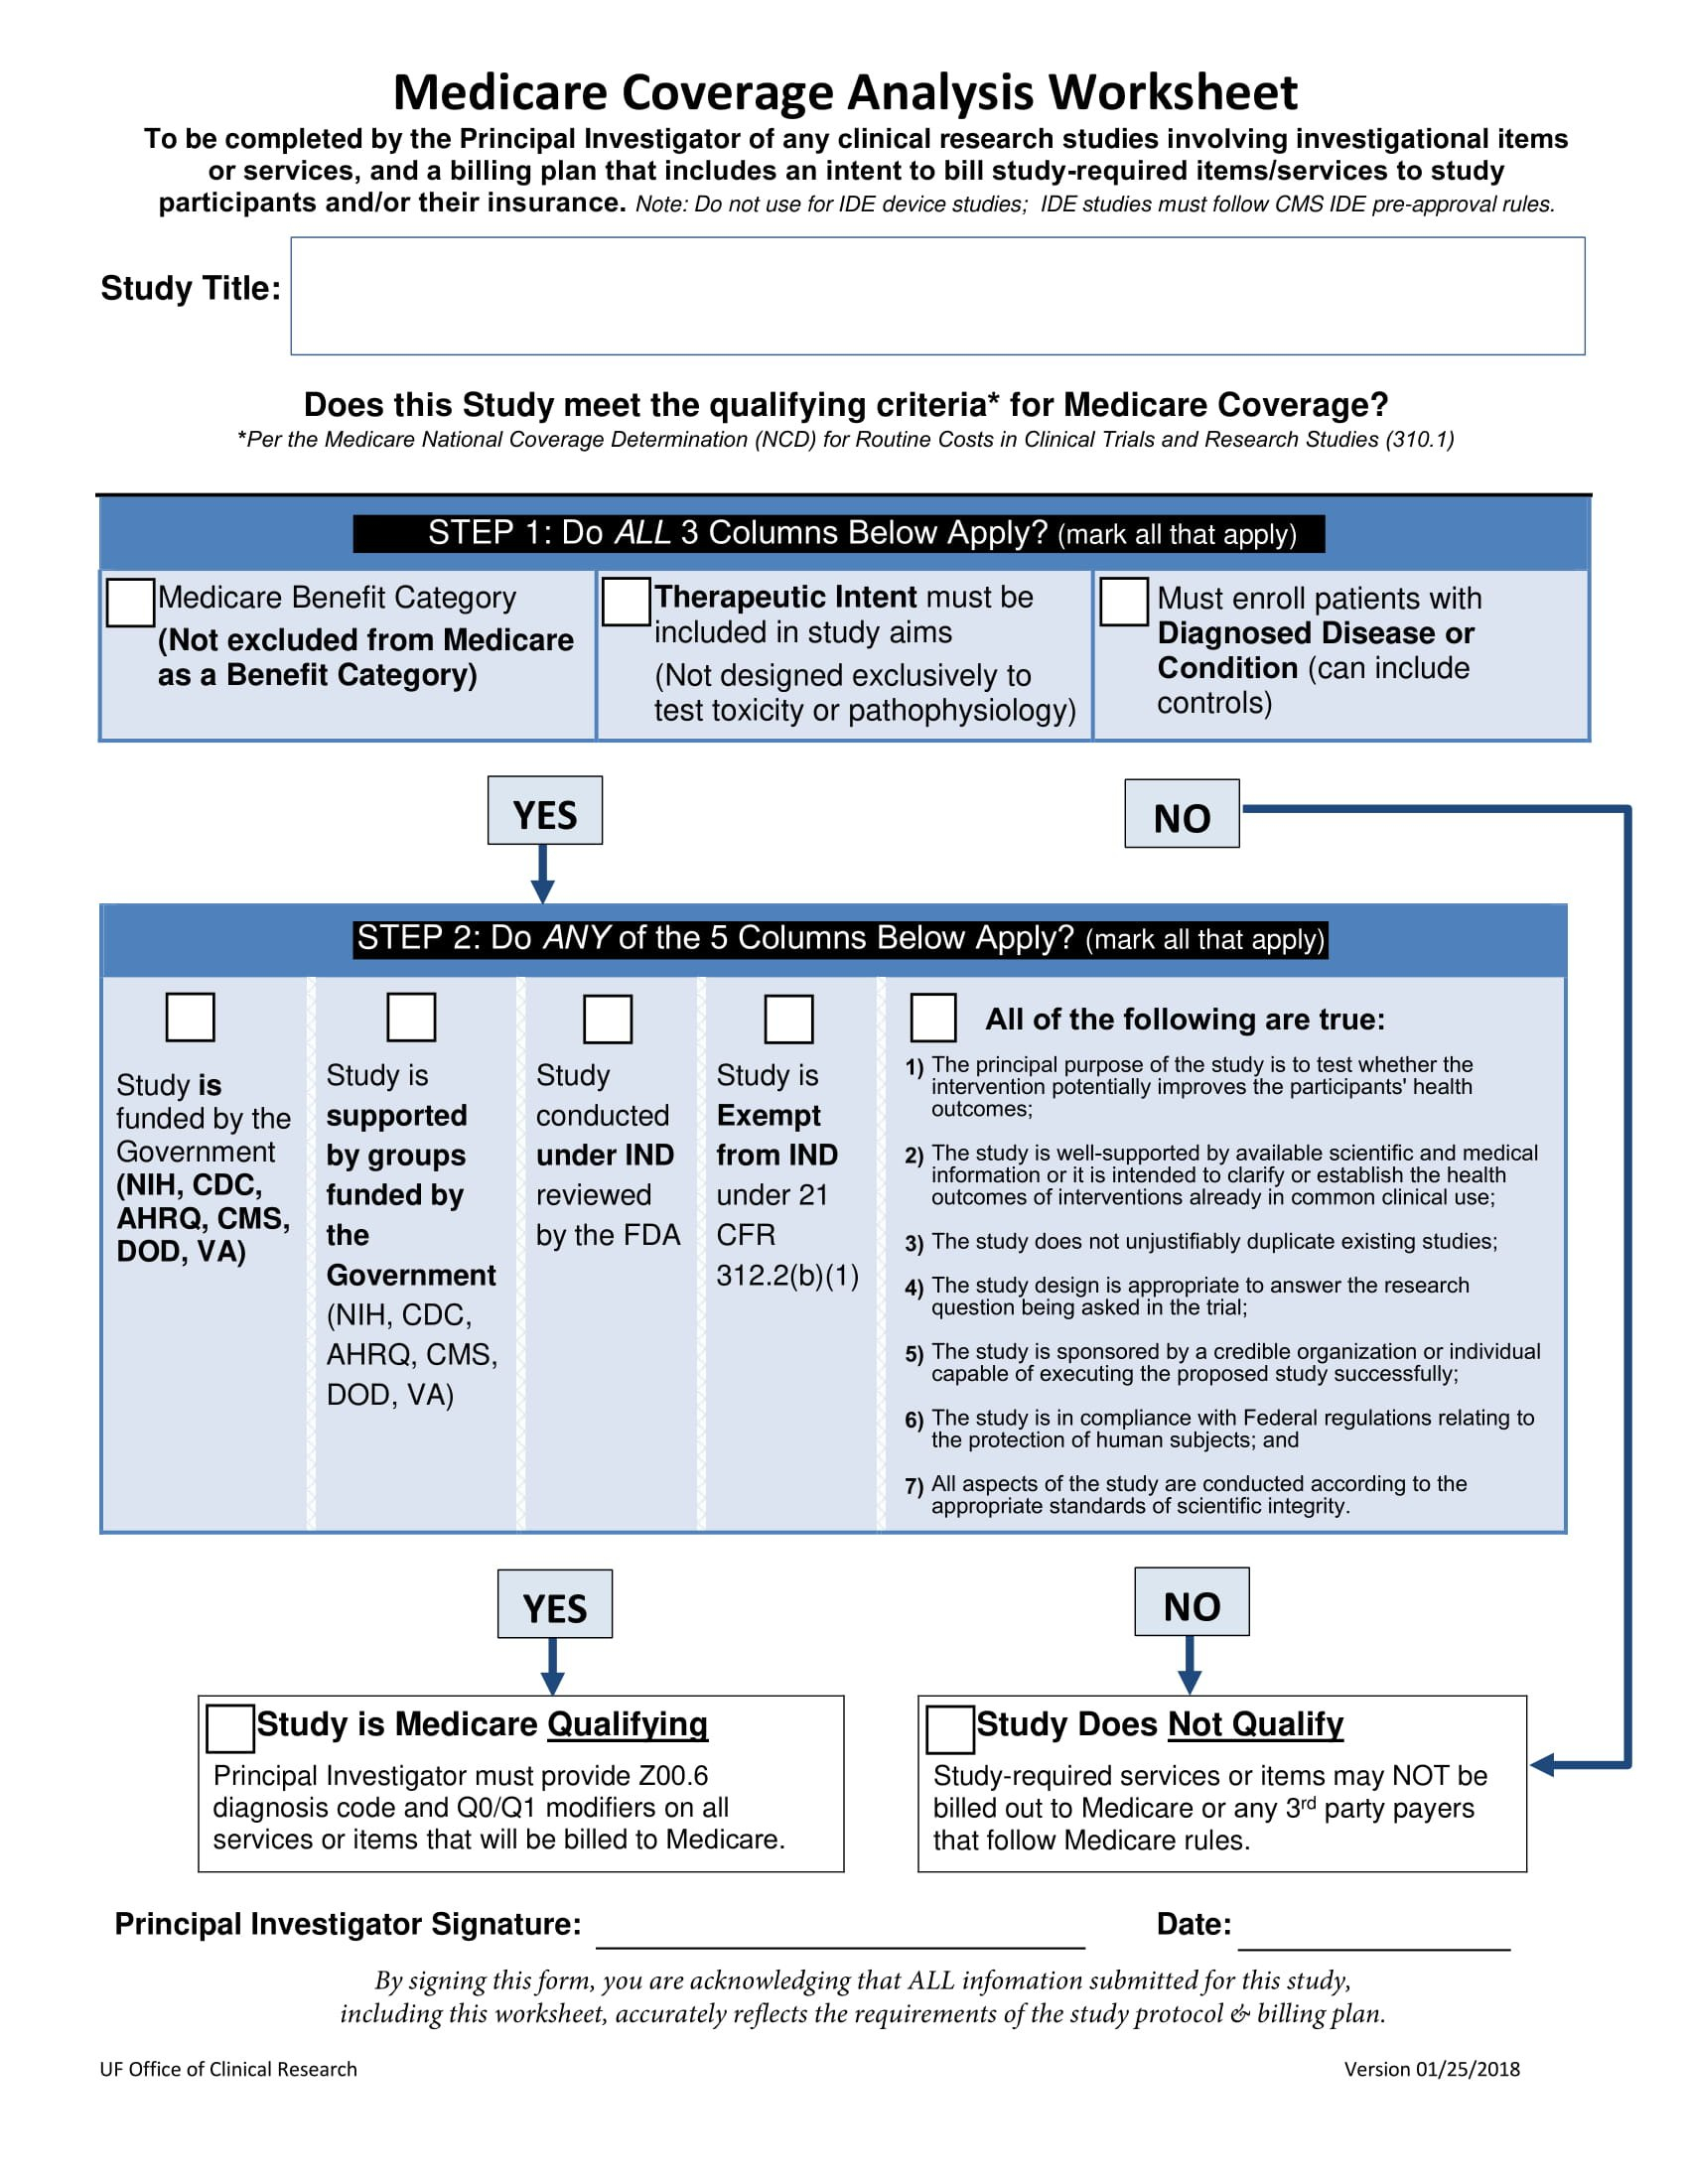 10 Medicare Coverage Analysis Examples  Pdf  Examples Or Medicare Coverage Analysis Worksheet